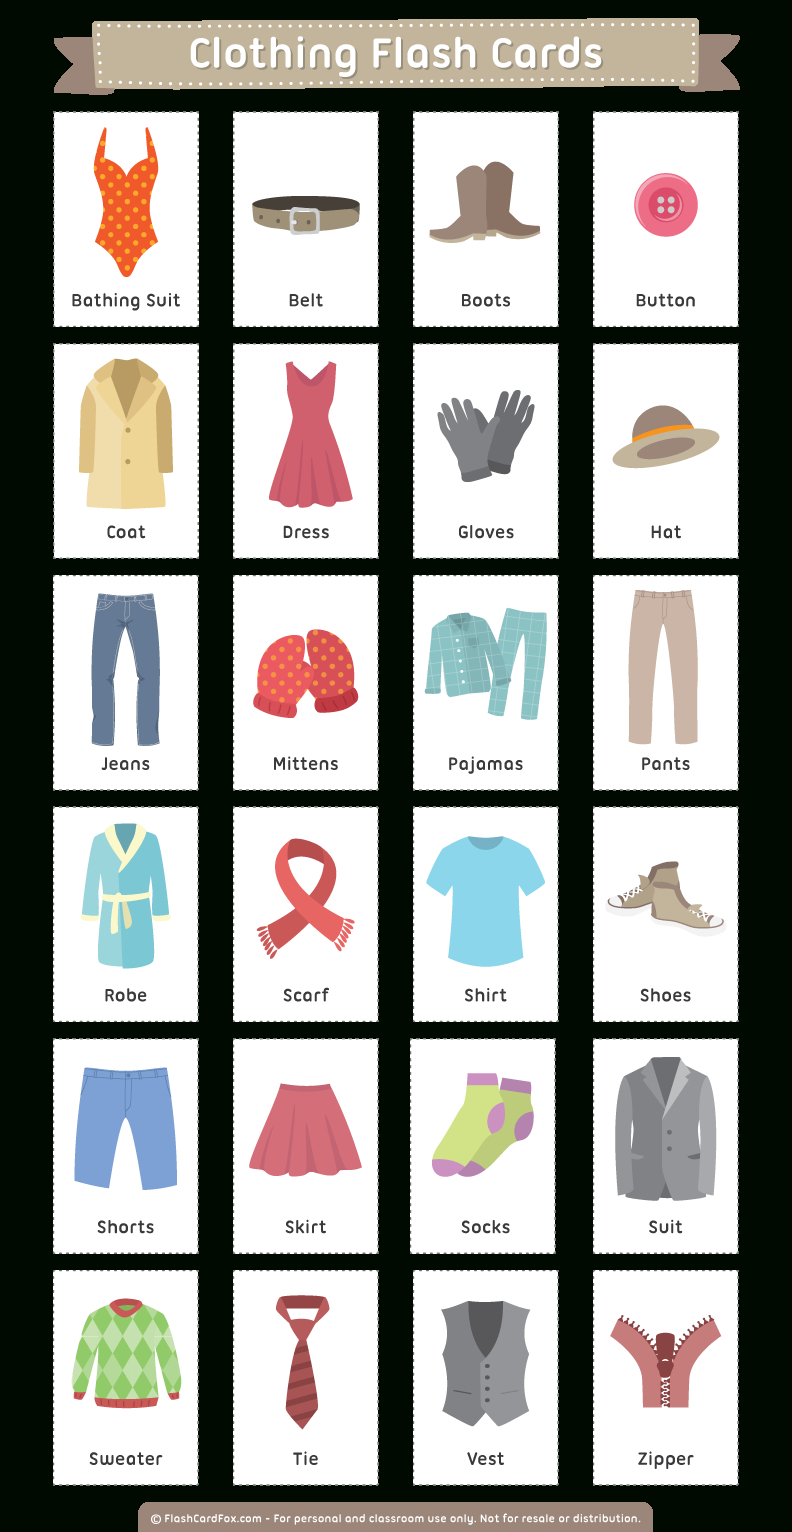 Free Printable Clothing Flash Cards | Flash Card | Pinterest - Free Printable Vocabulary Flashcards